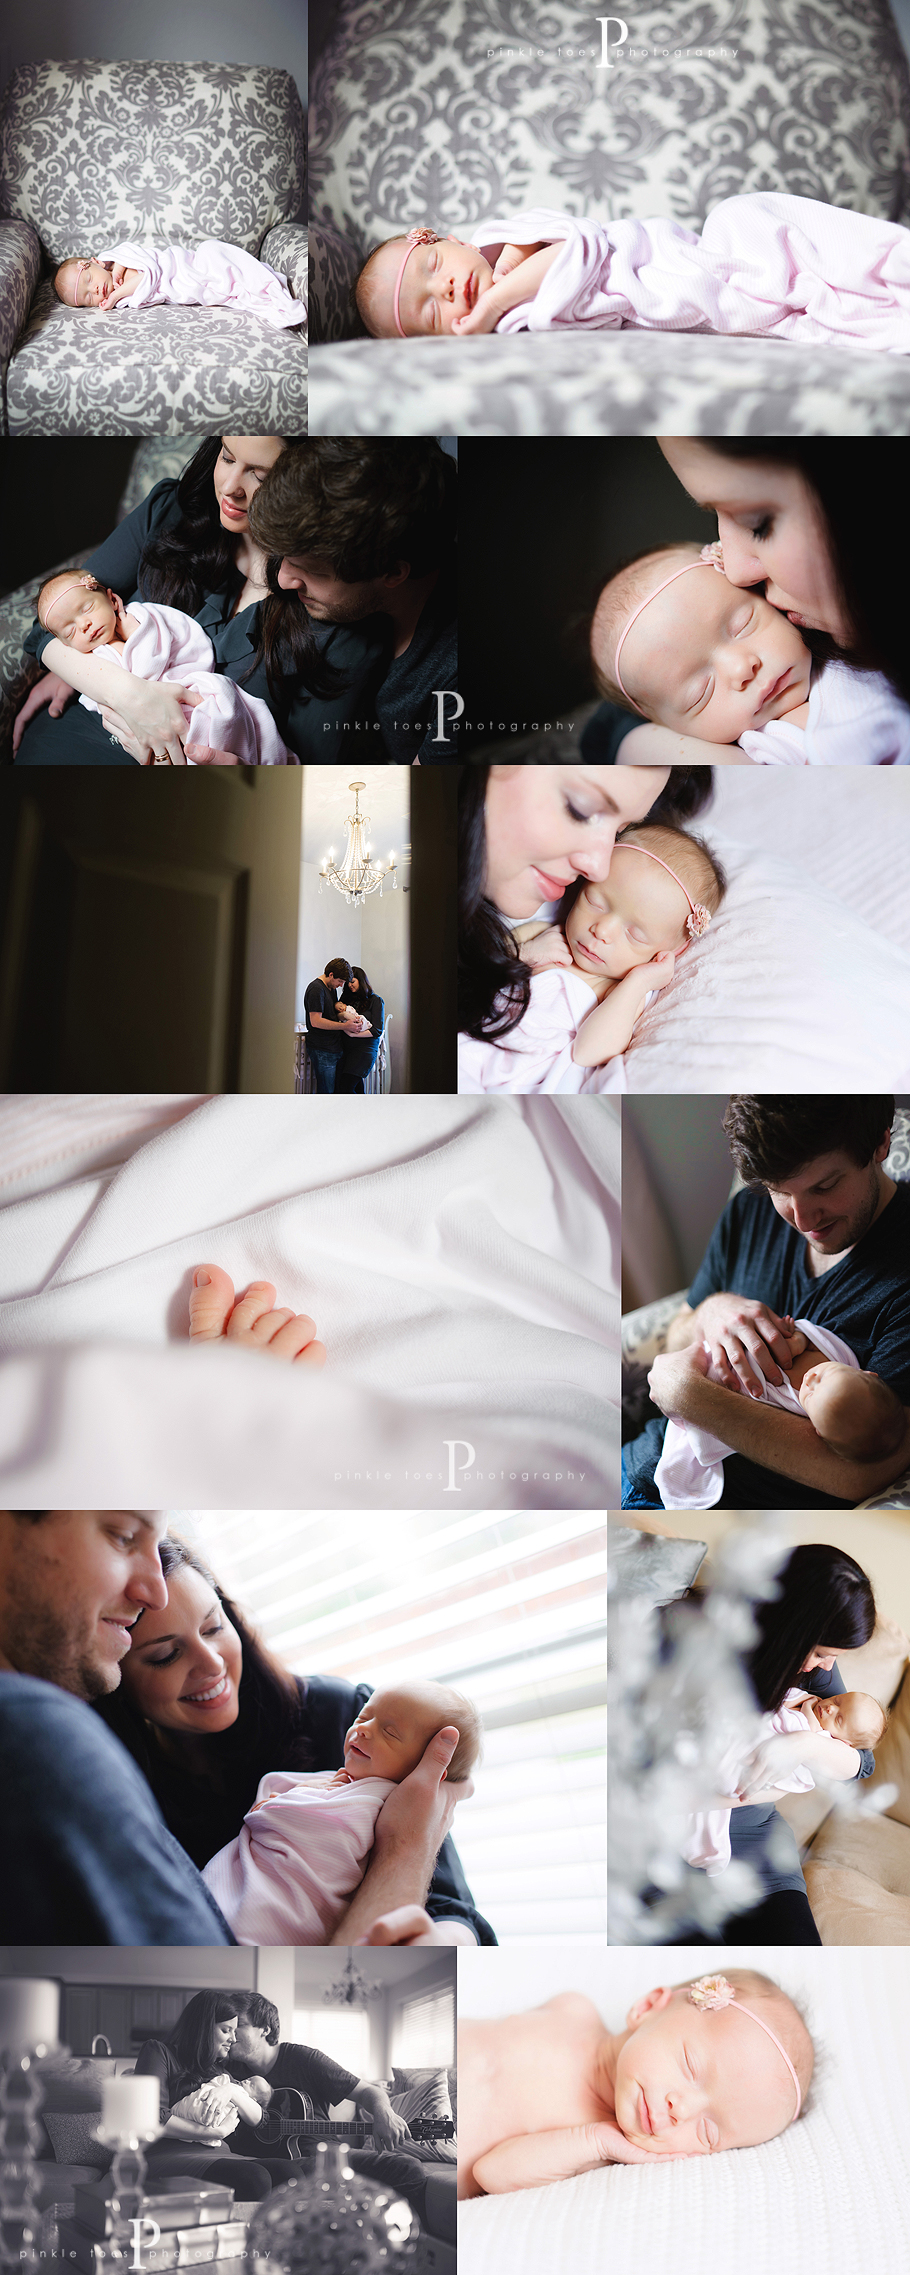 ap-austin-newborn-lifestyle-romantic-beautiful-photographer.jpg